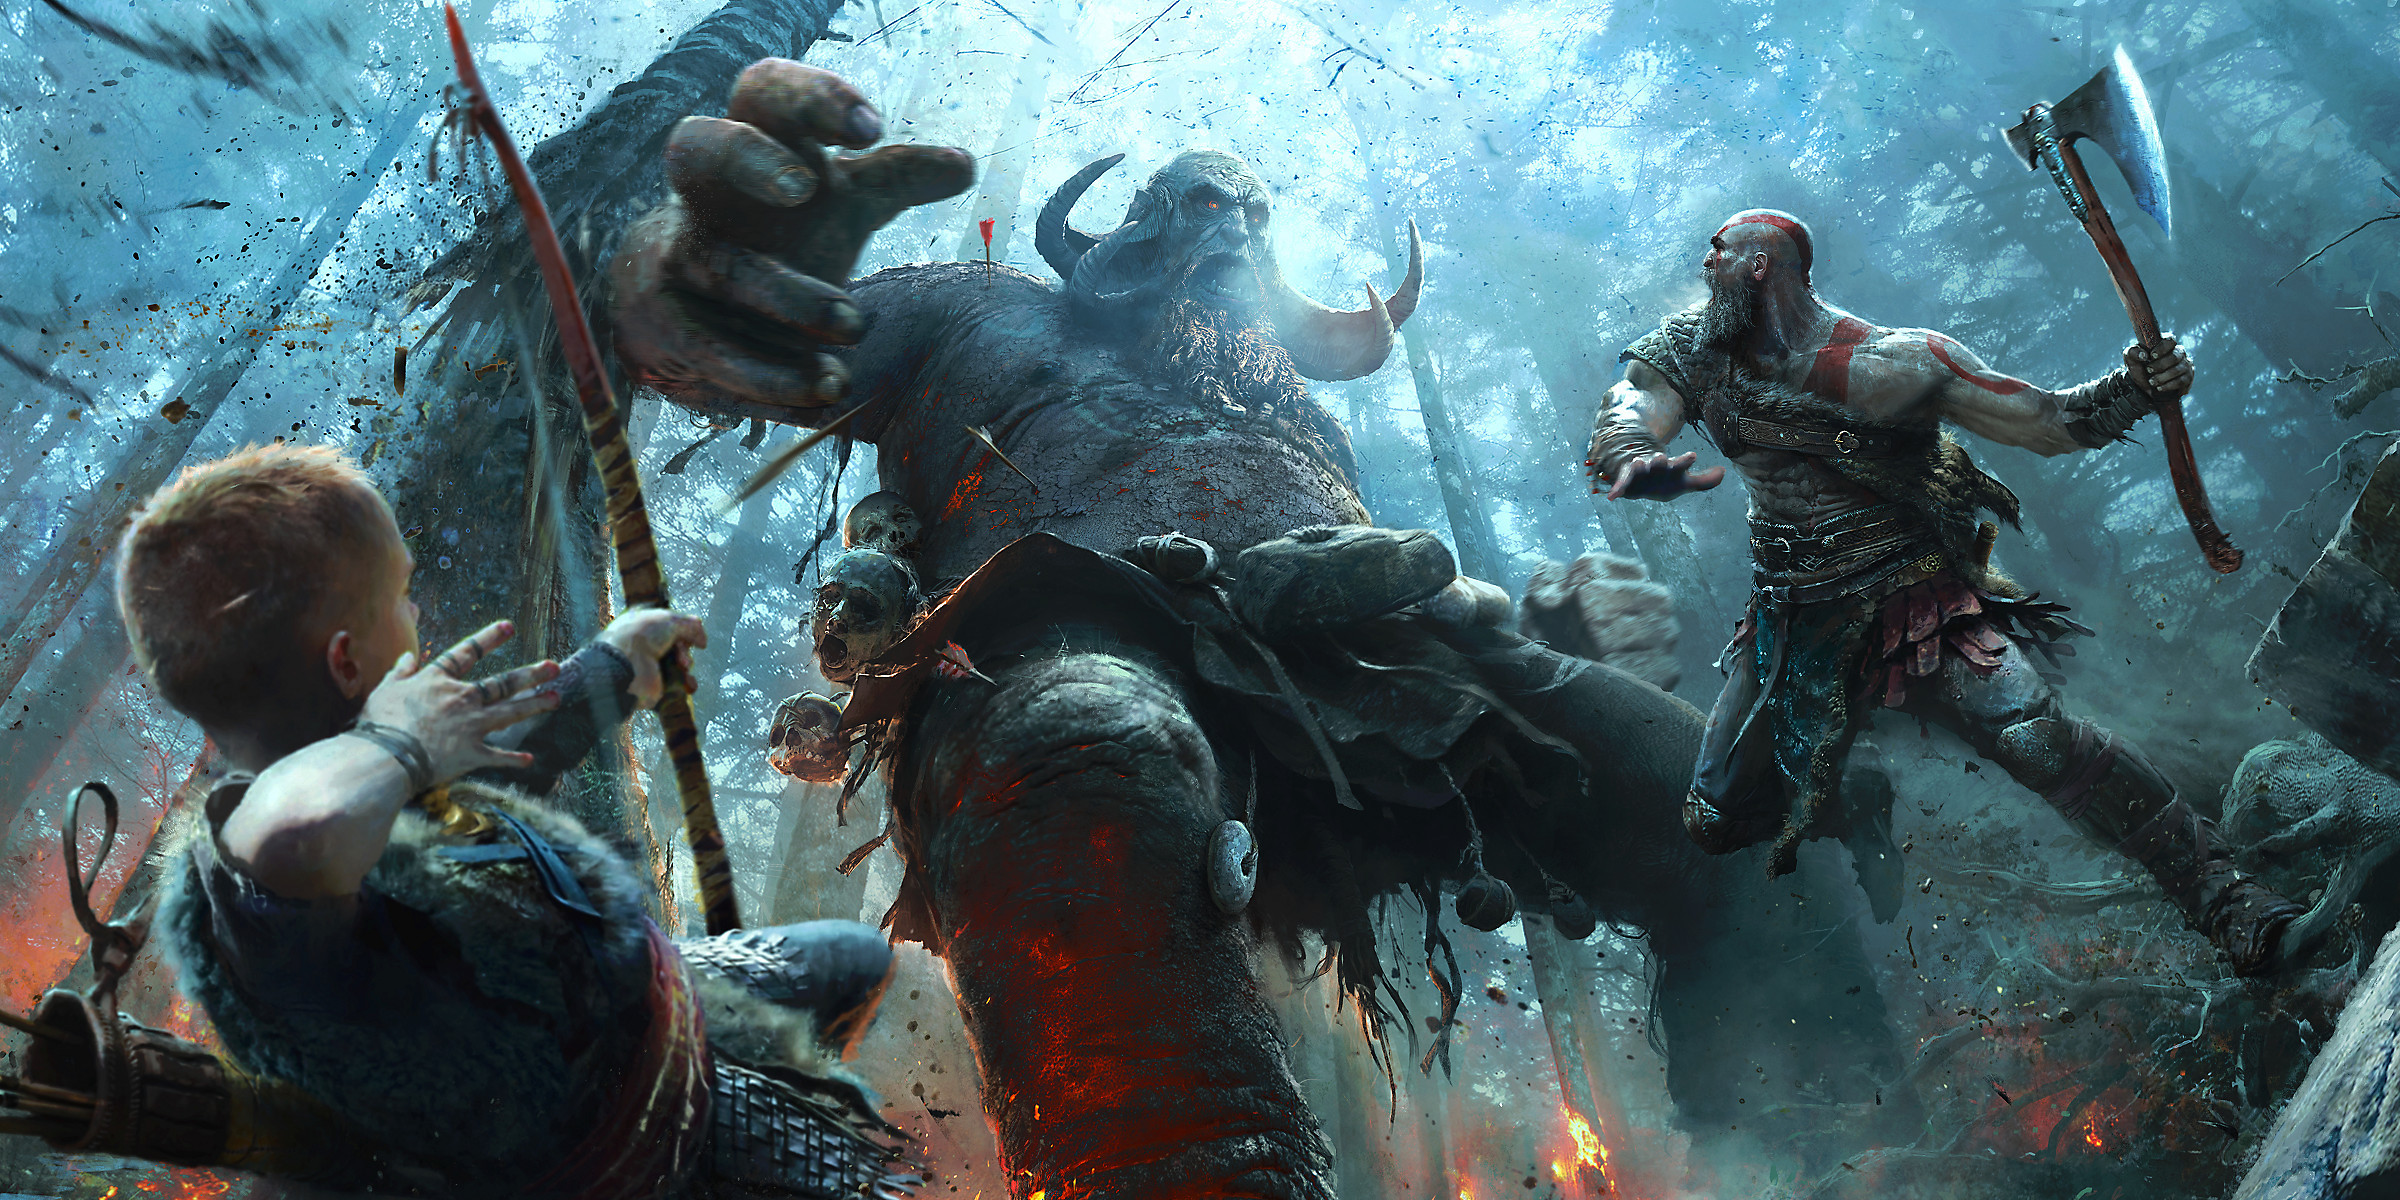 Today's Best Game Deals: God of War $30, Devil May Cry 5 $54, Pokémon Let's Go $47, more